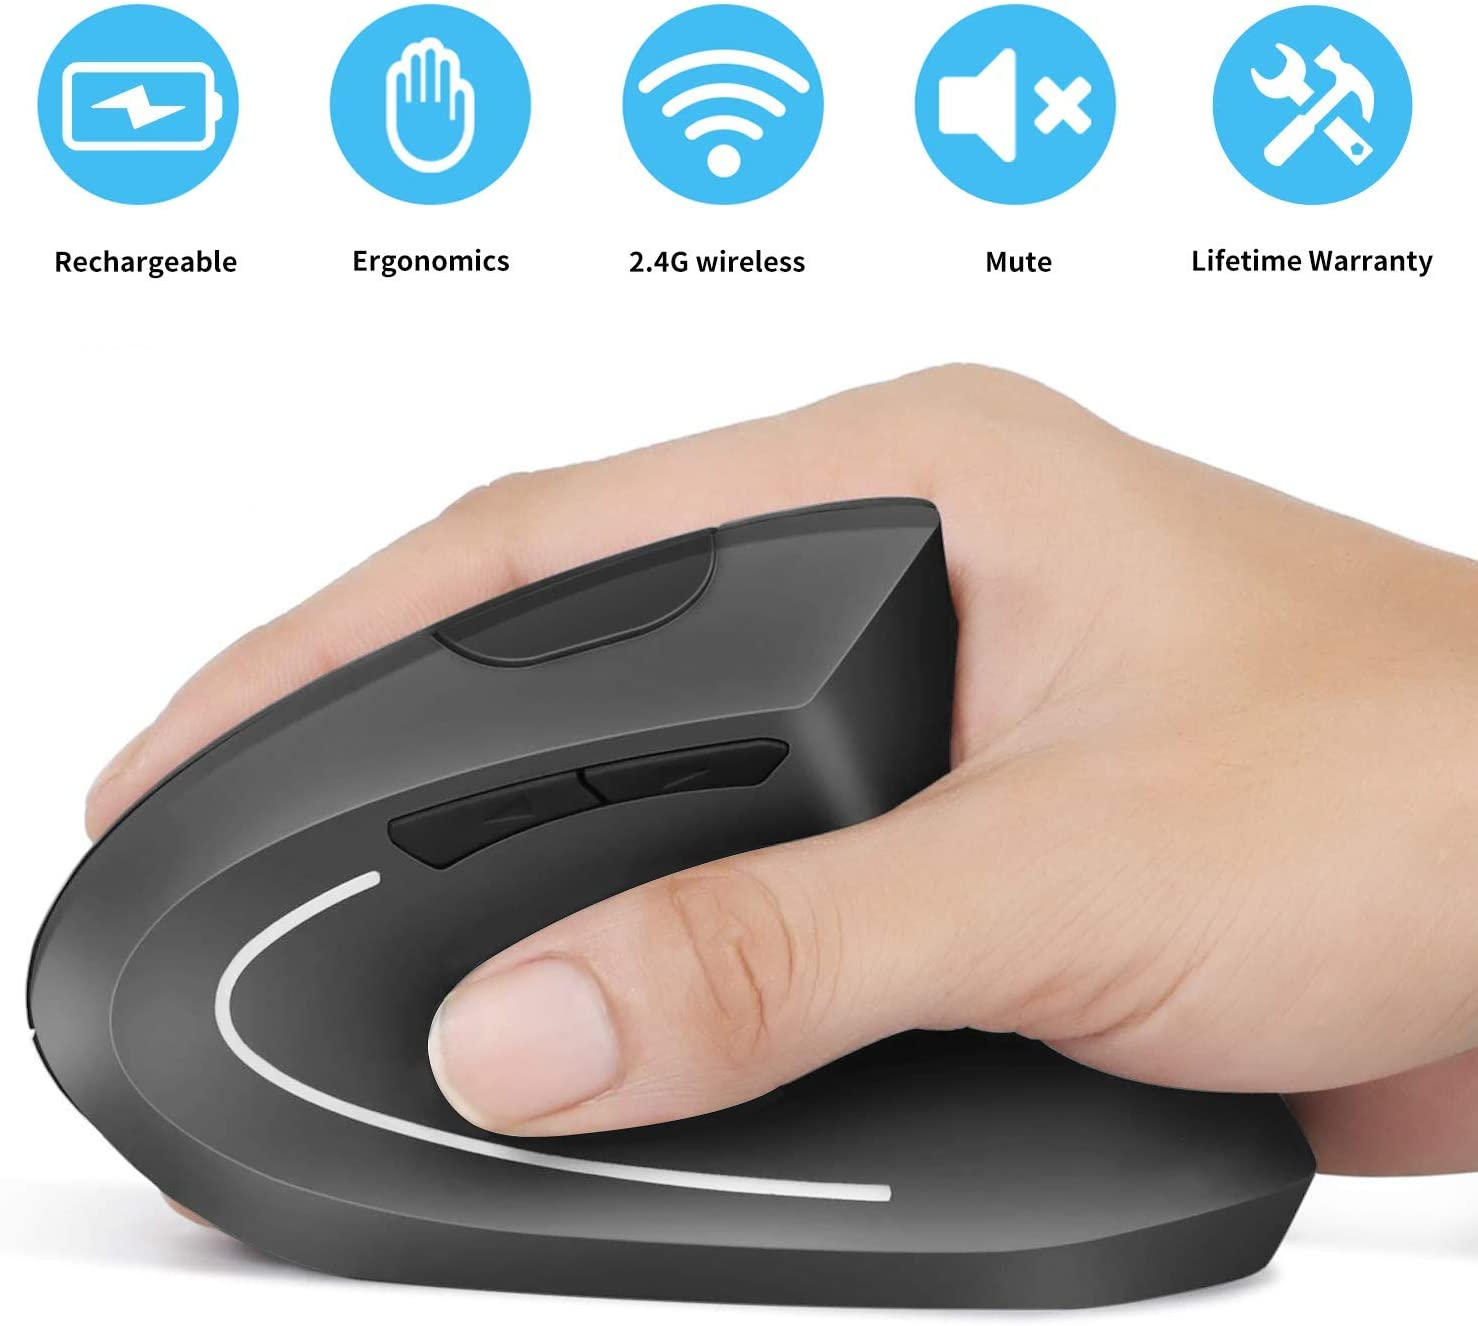 Rechargeable Ergonomic Mouse, Vertical Wireless Mouse, 2.4G Vertical Optical Mouse, Adjustable DPI 800/1200 /1600, 6 Buttons, for Laptop, PC, Computer, Desktop, Notebook etc, MacBook - Gray